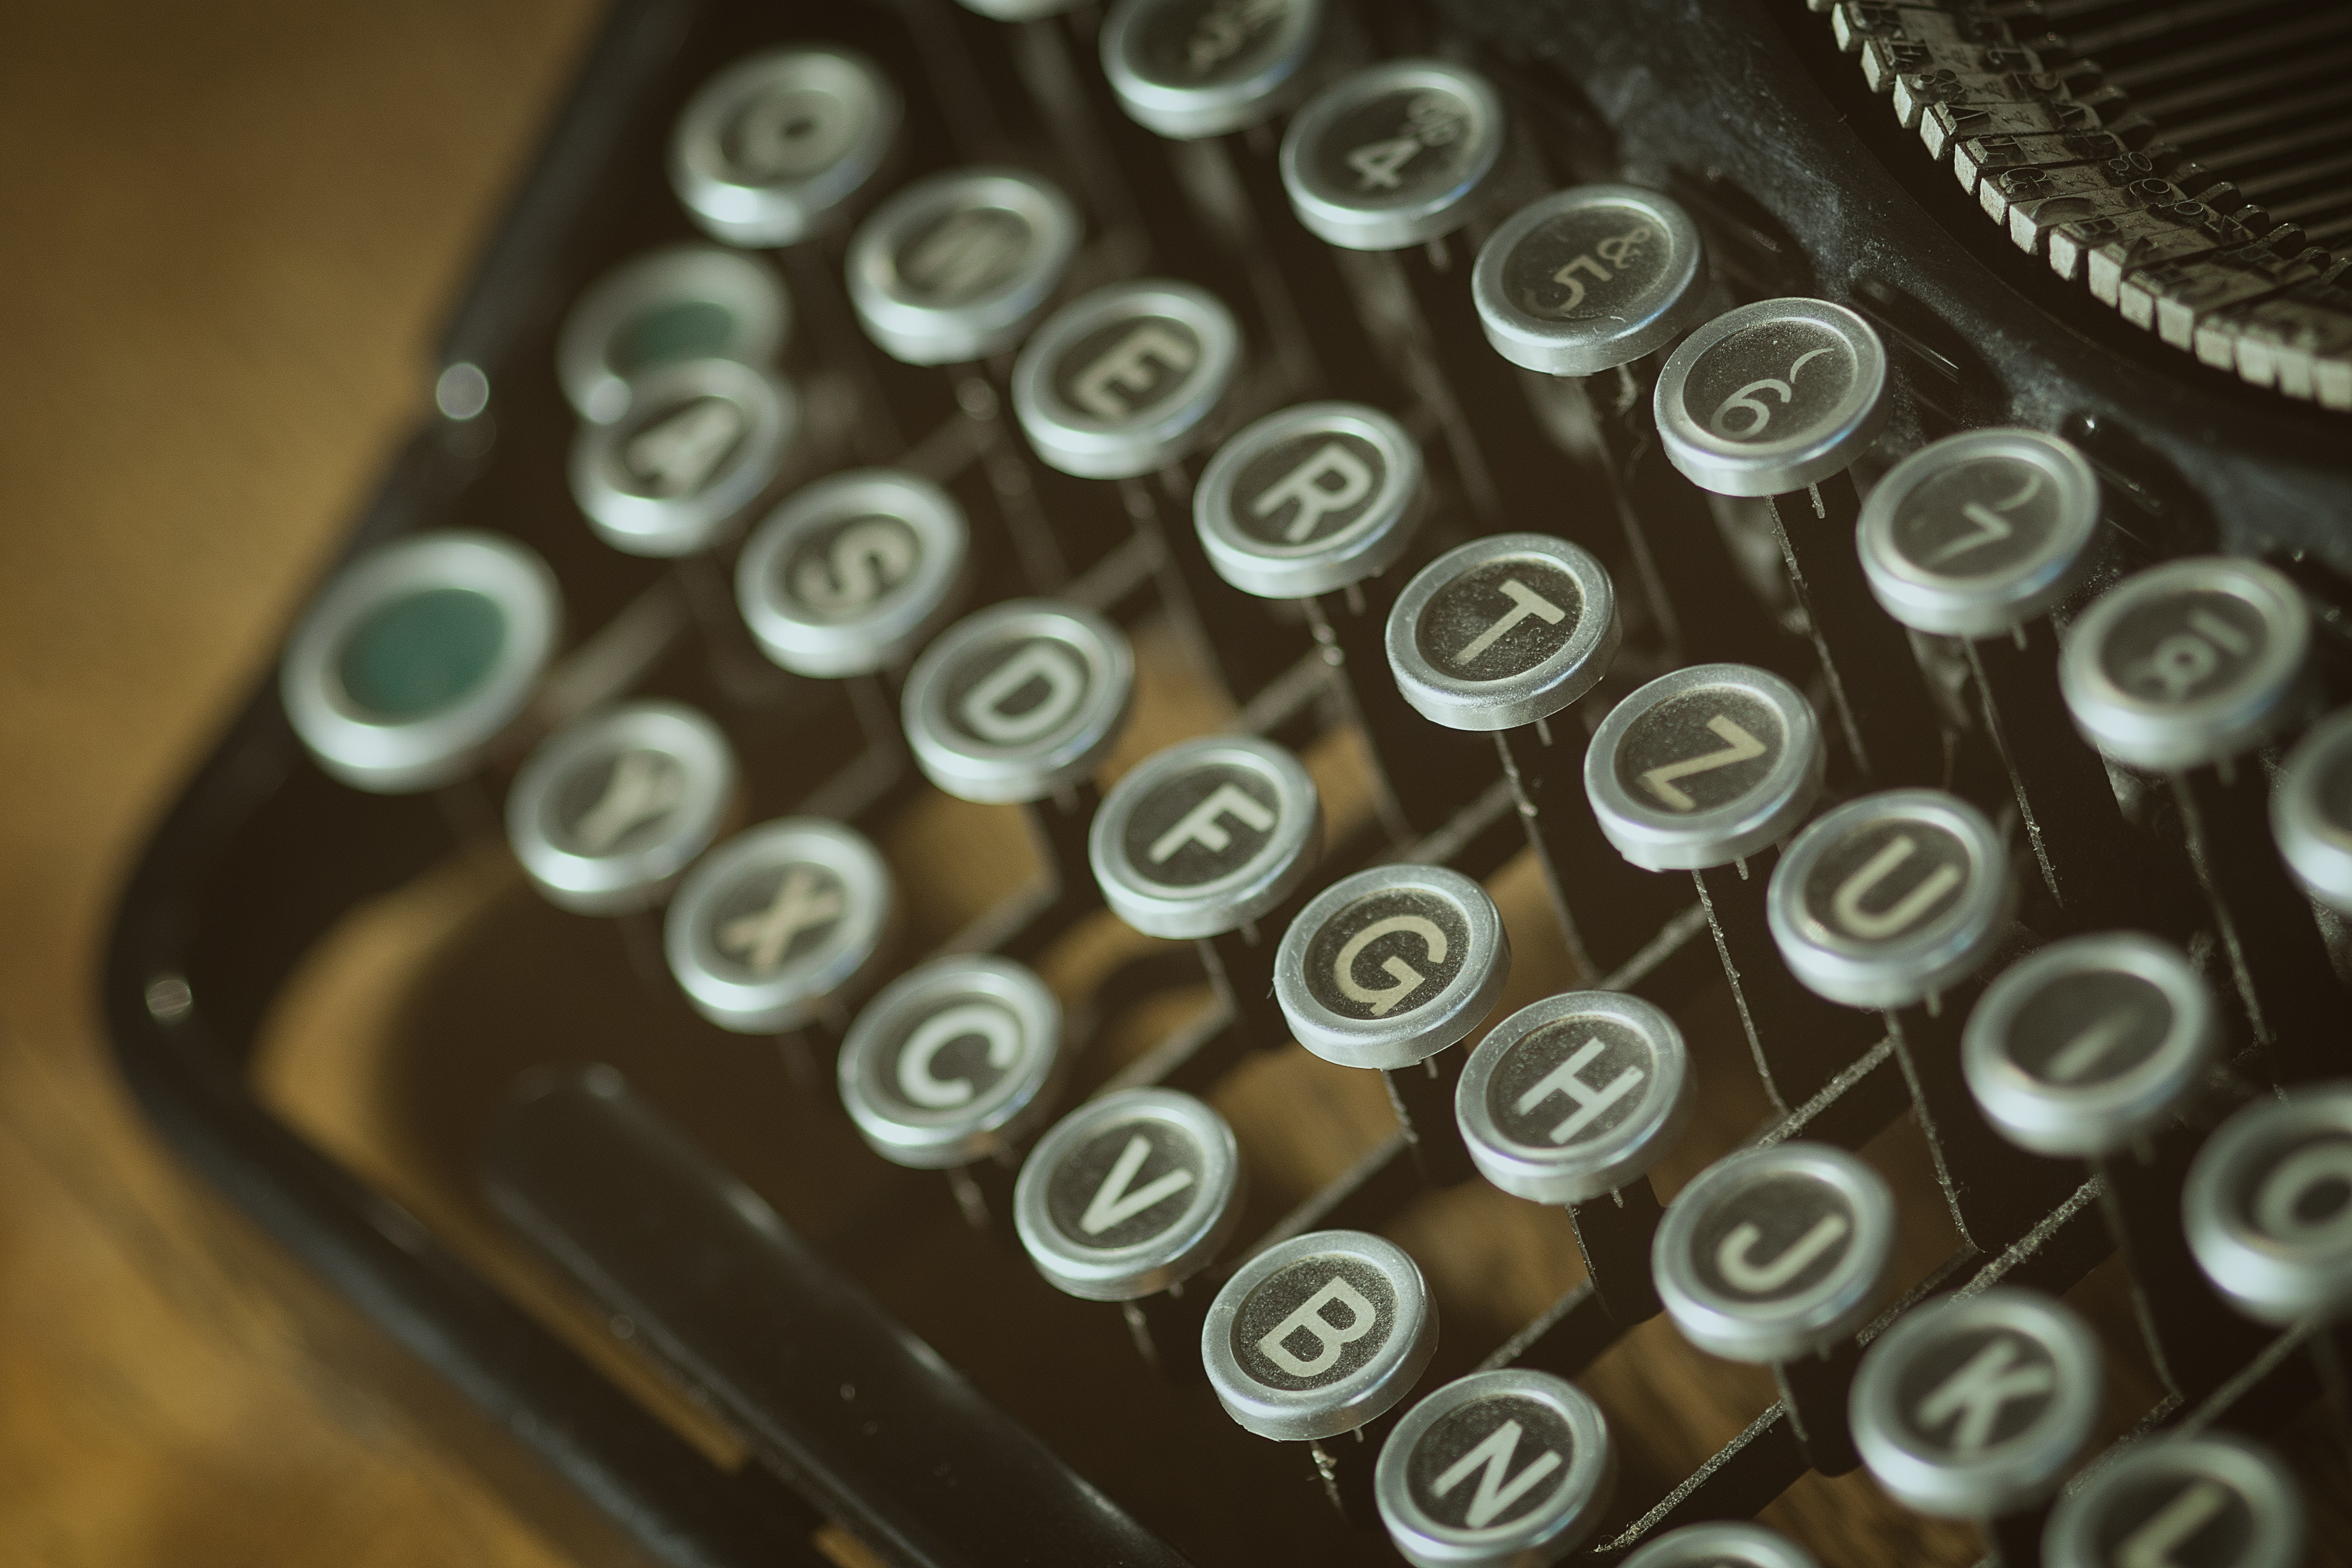 Shallow photoghrapy of black and gray type writer keys